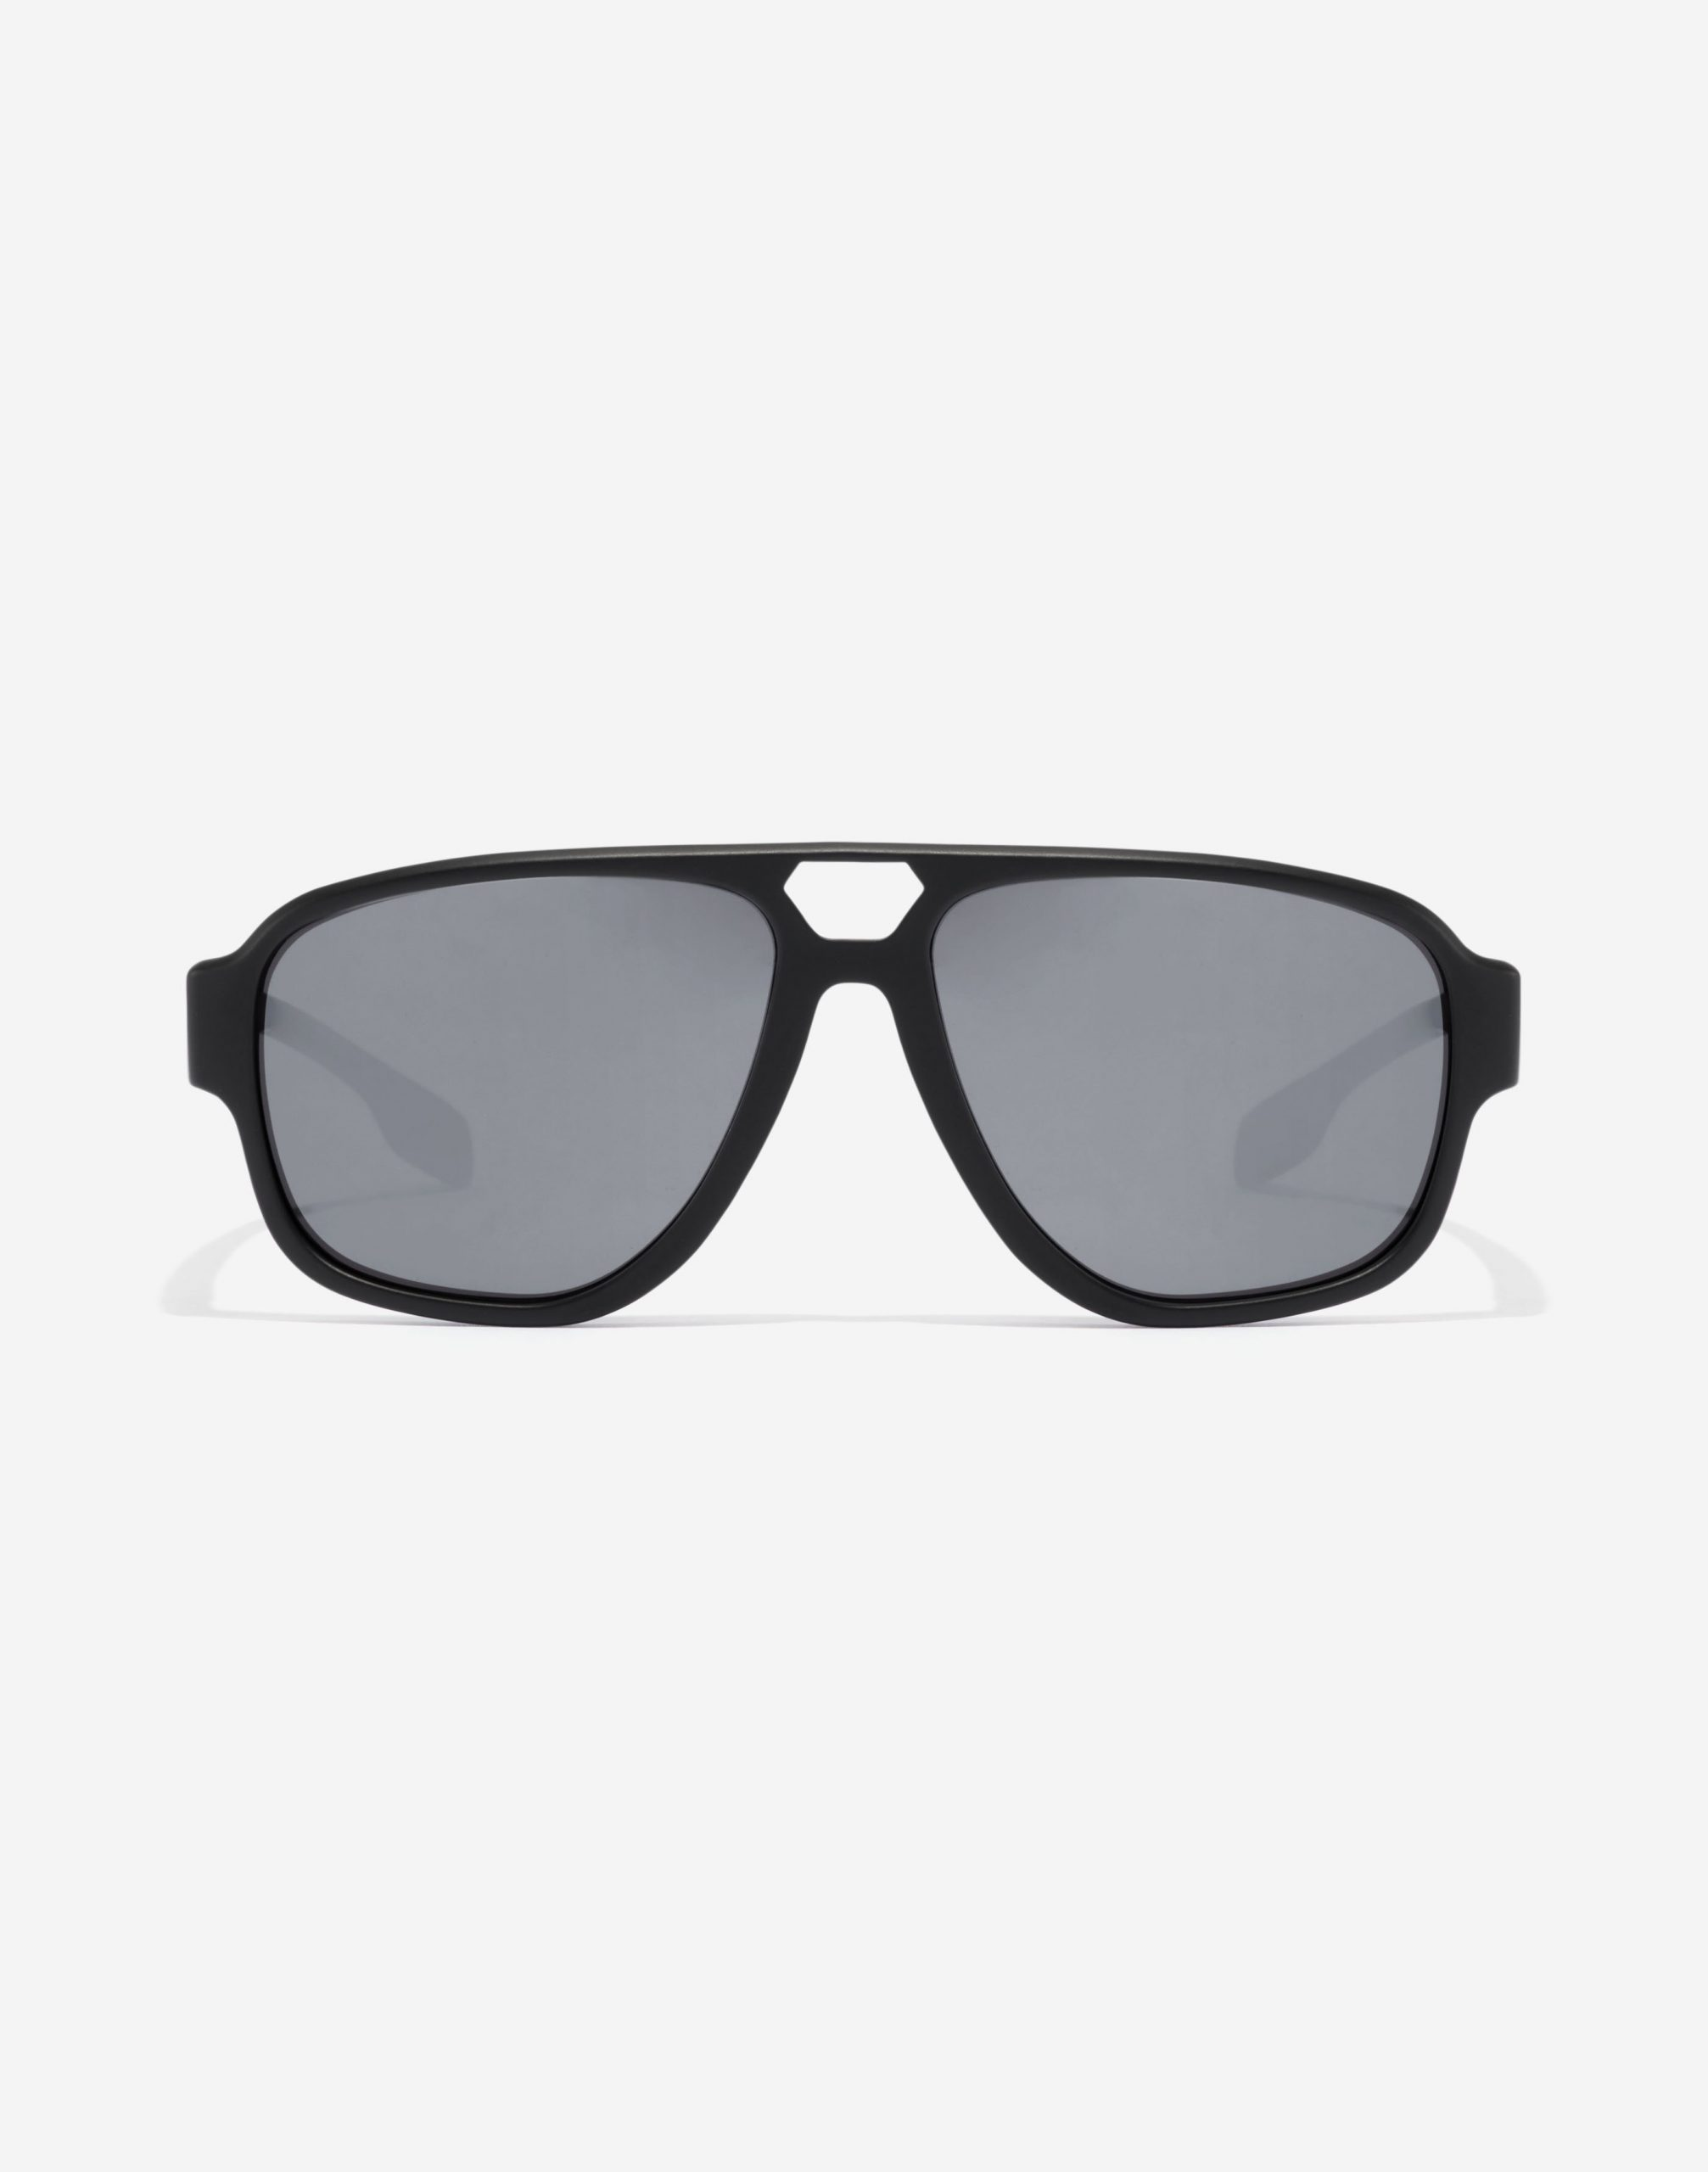 Occhiali da sole Hawkers STEEZY - POLARIZED MIRROR shopthelook